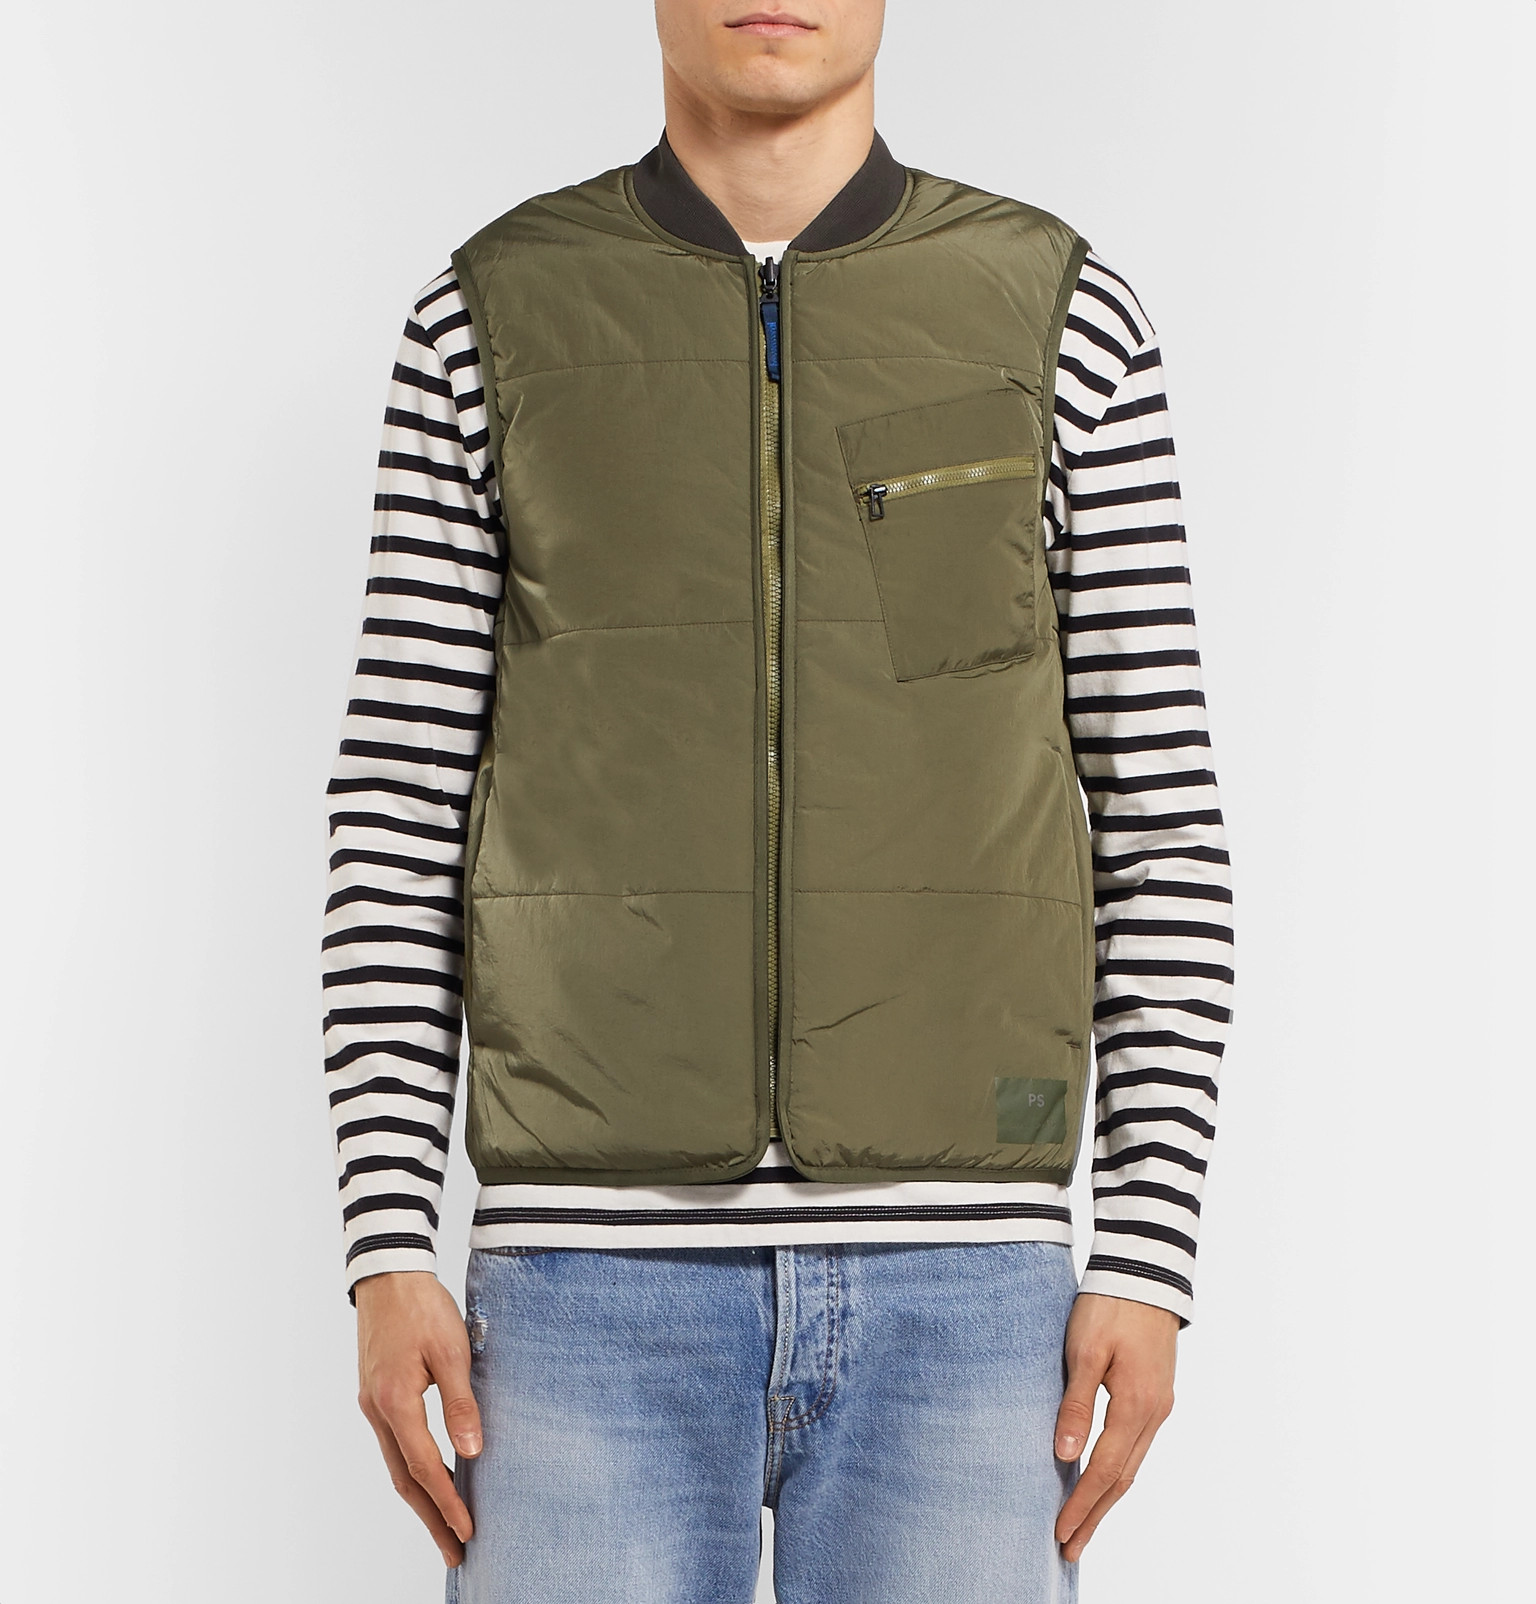 bff549b9cfa The Gilet  The Extra Layer You Need Right Now   The Daily   MR PORTER